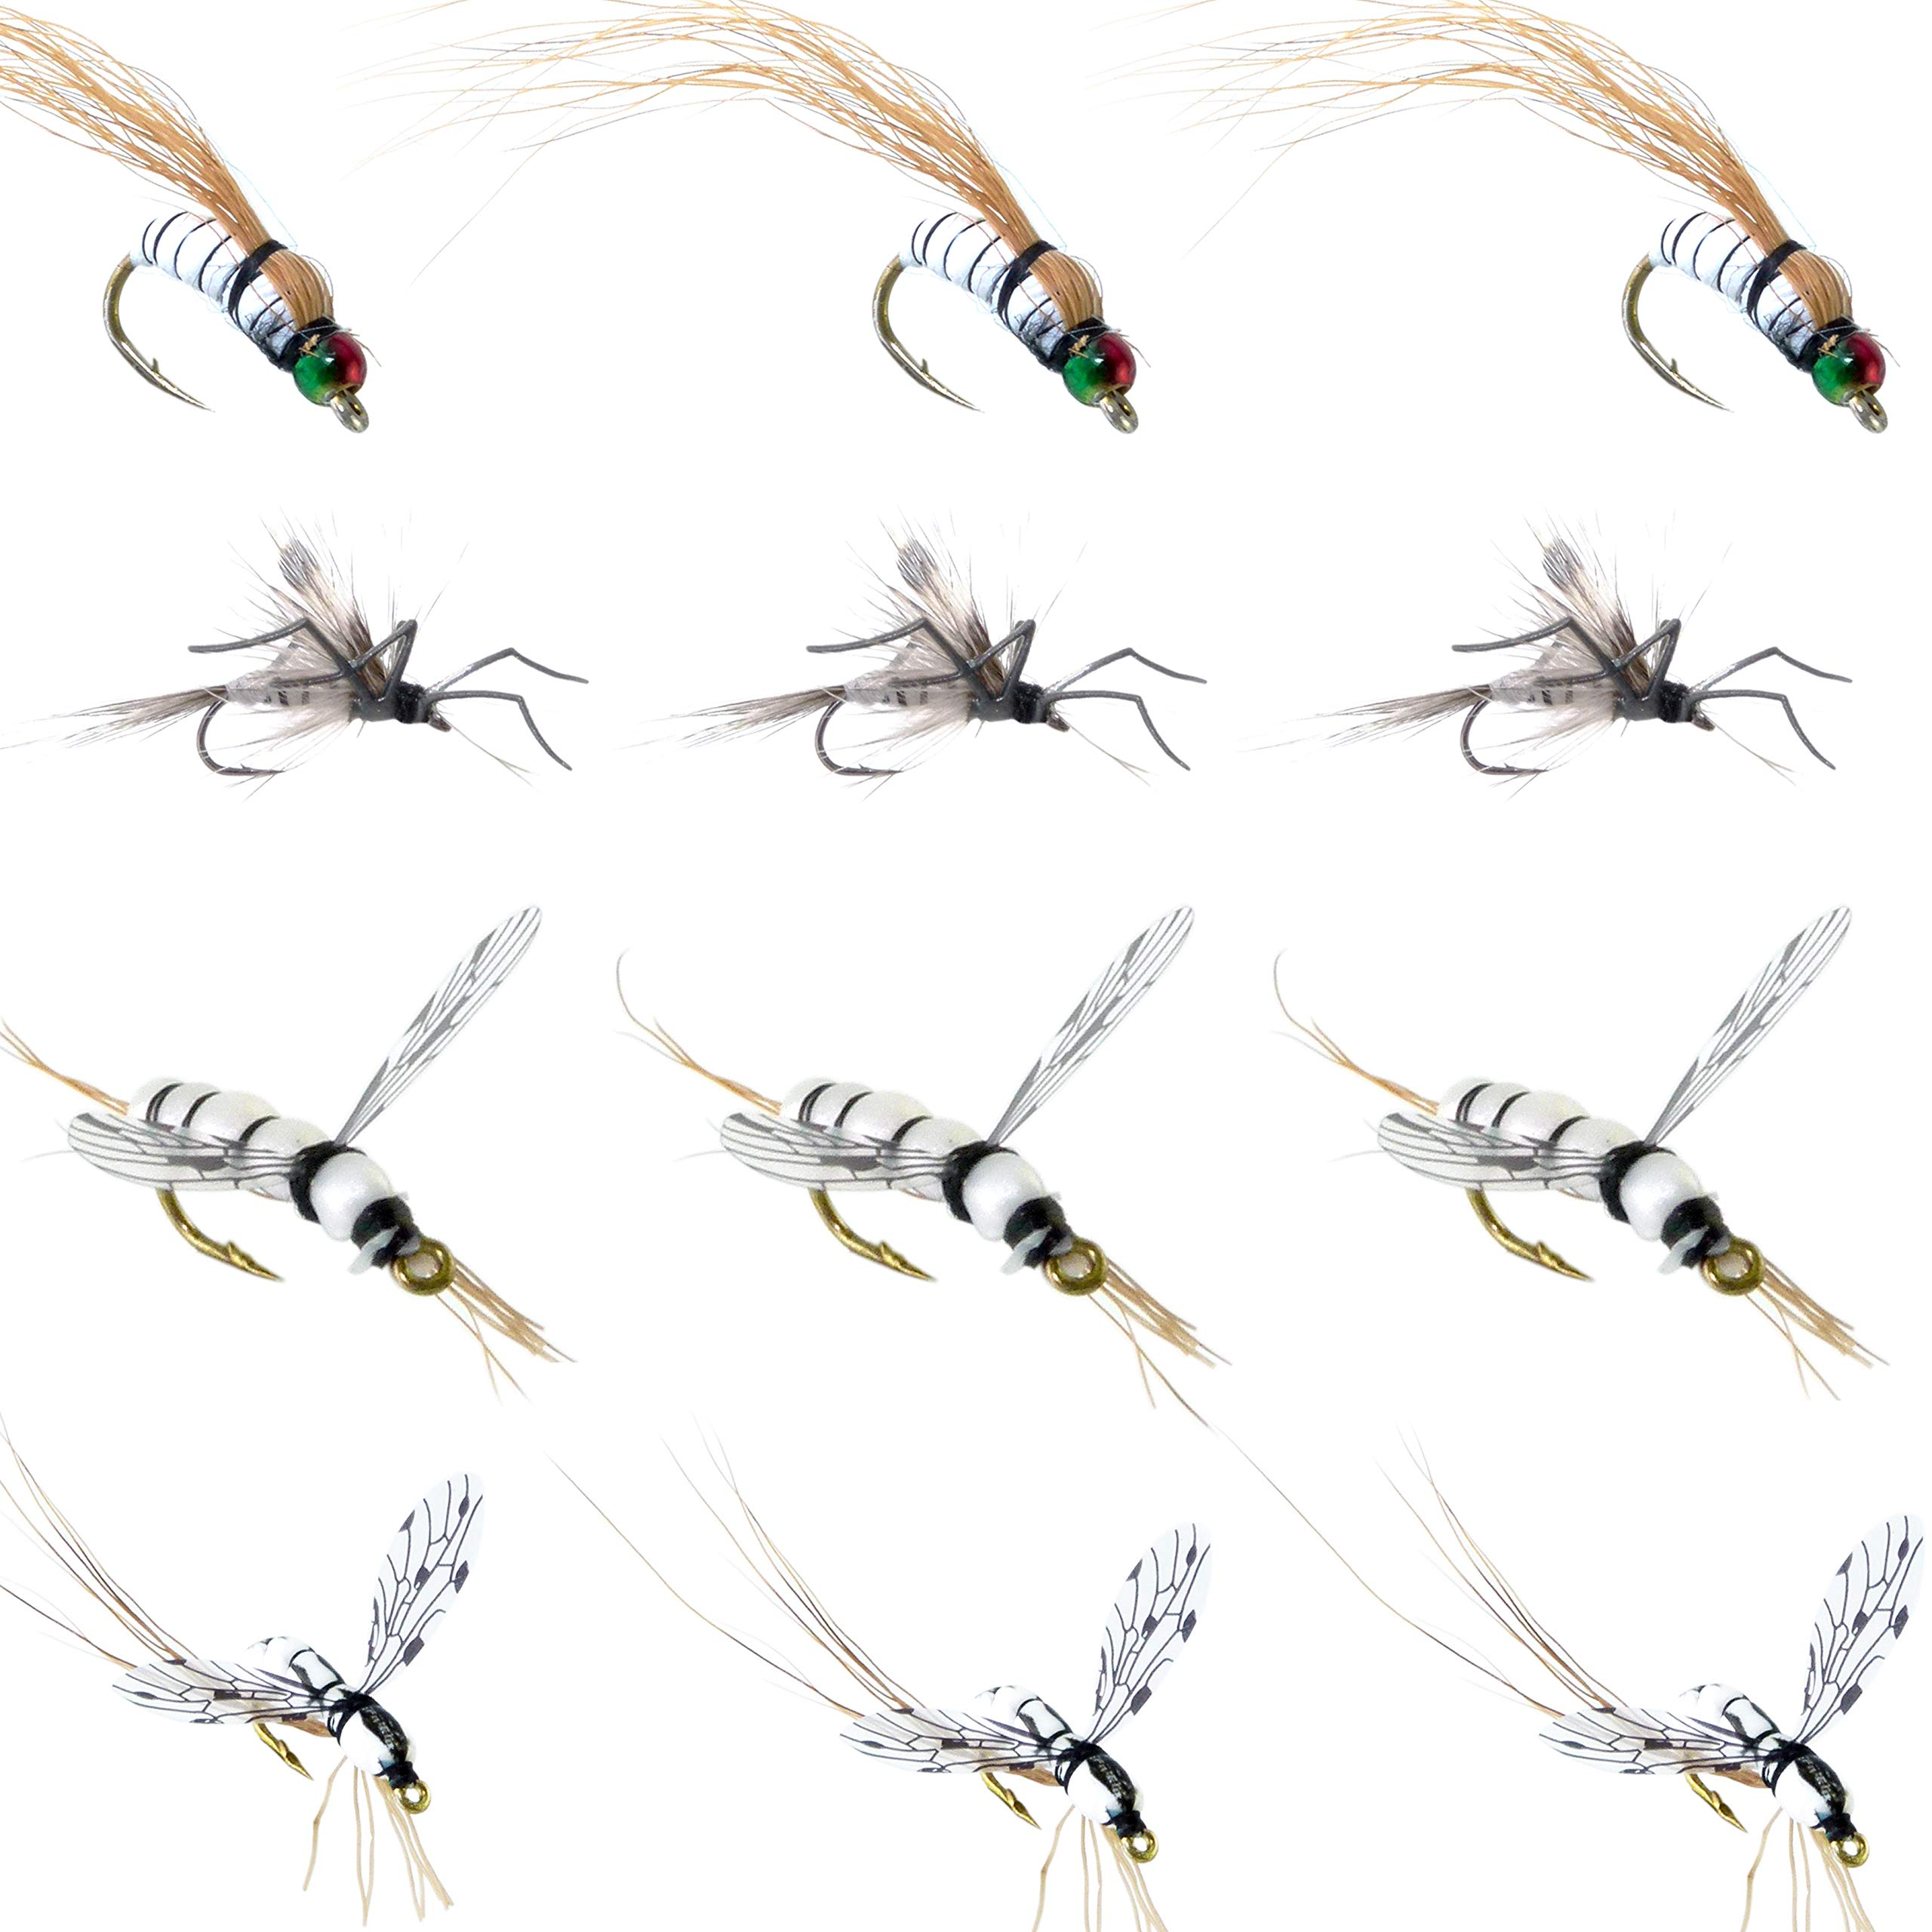 YAZHIDA Fly Fishing Flies Kit Fly Assortment Trout Bass Fishing with Fly Box with Dry/Wet Flies, Nymphs, Streamers